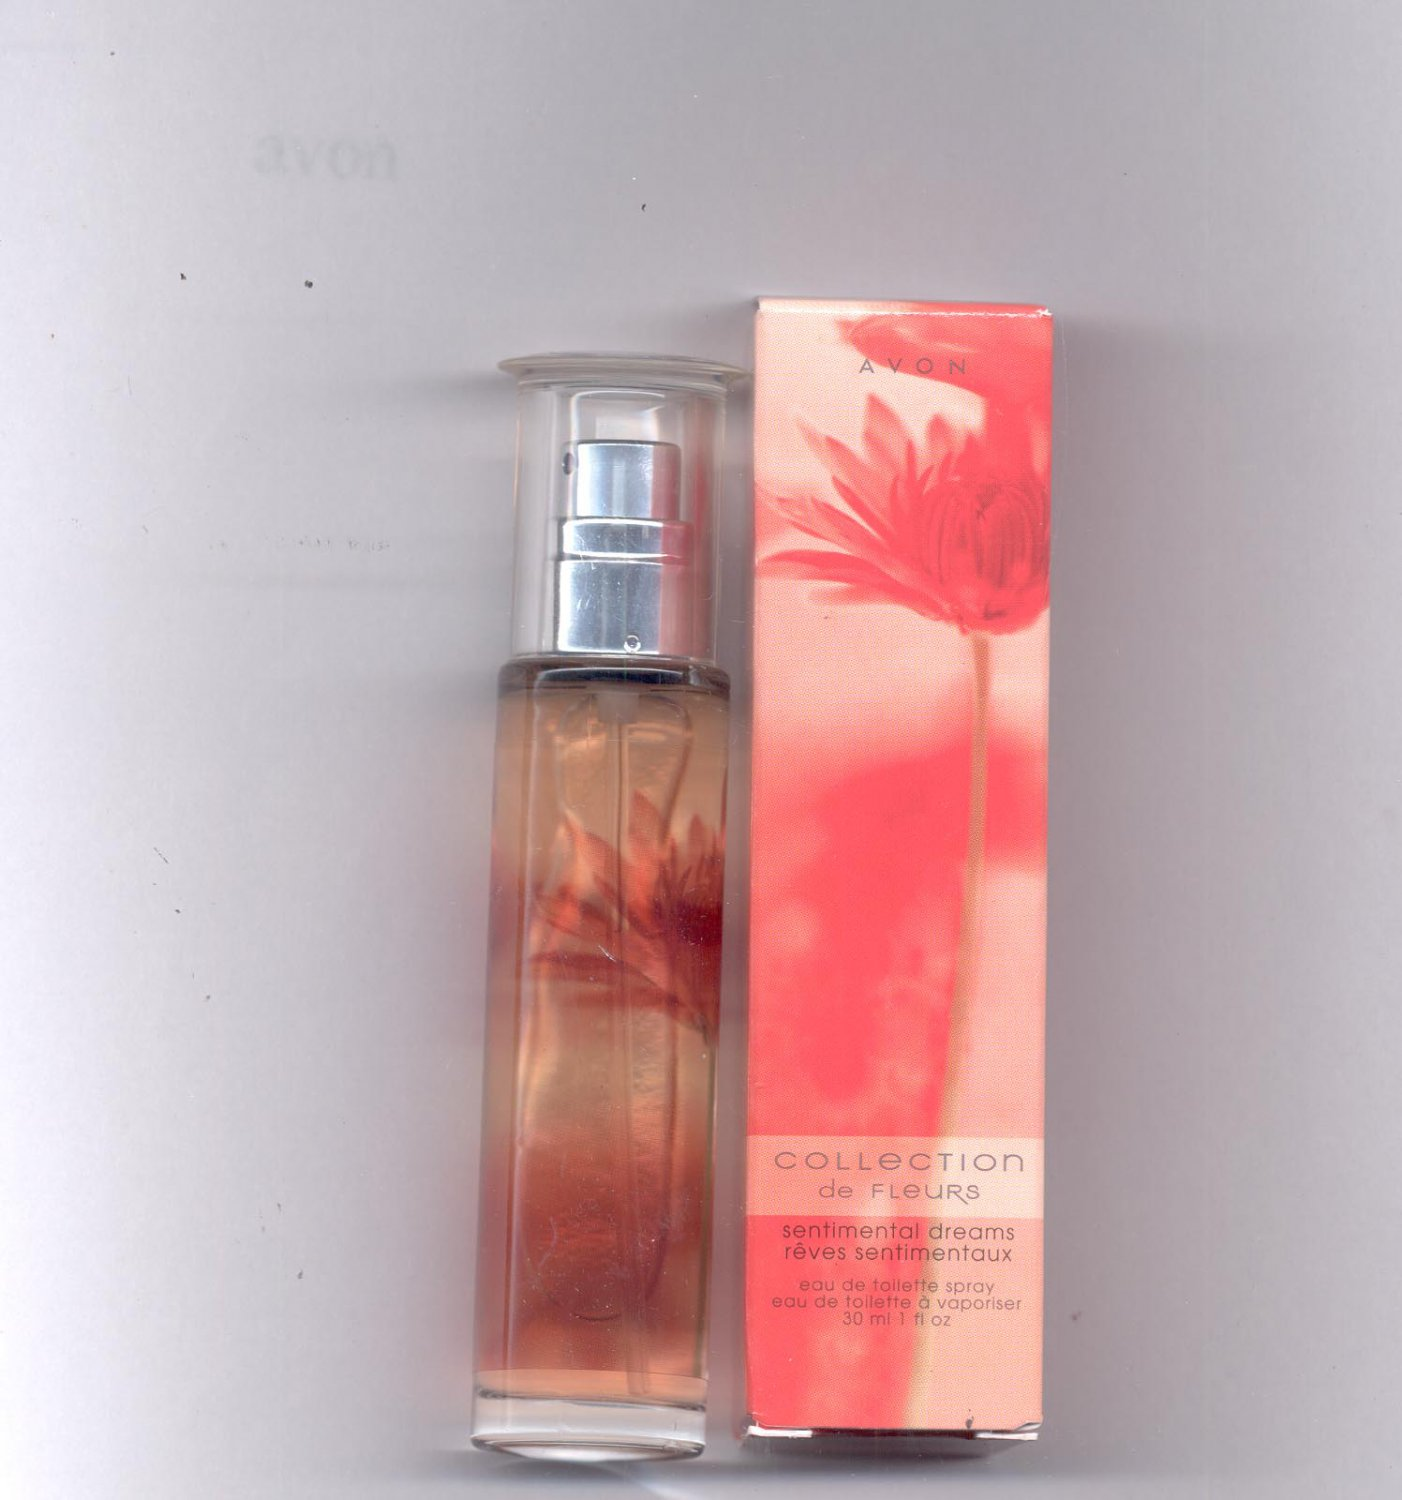 Avon  Sentimental Dreams eau de toilette spray- NOS